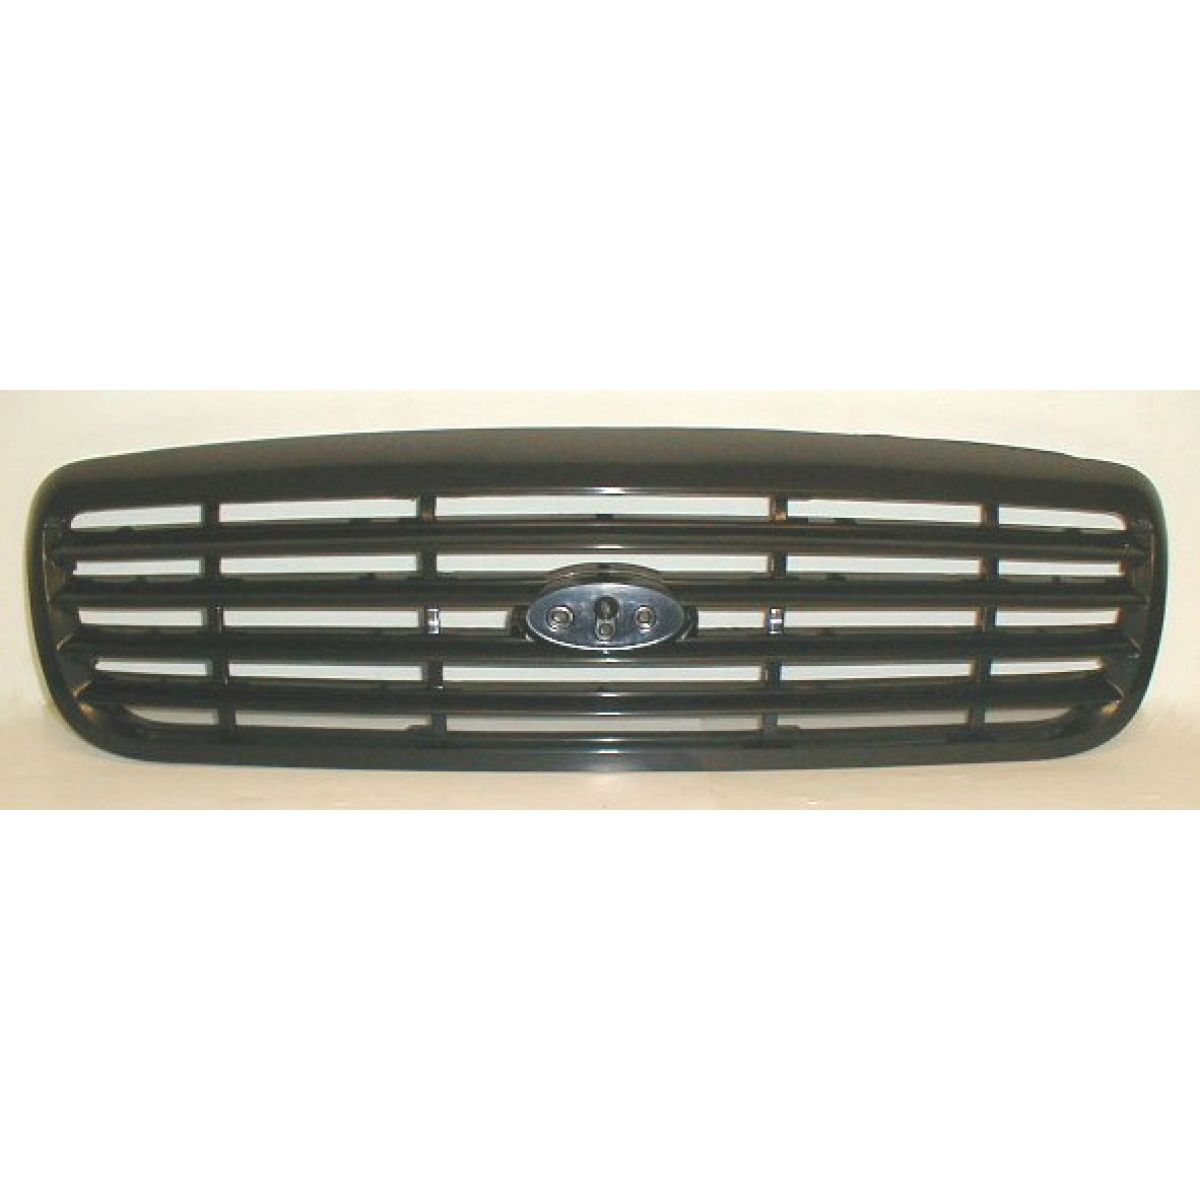 Grille grill black horizontal bar for 98 11 ford crown victoria